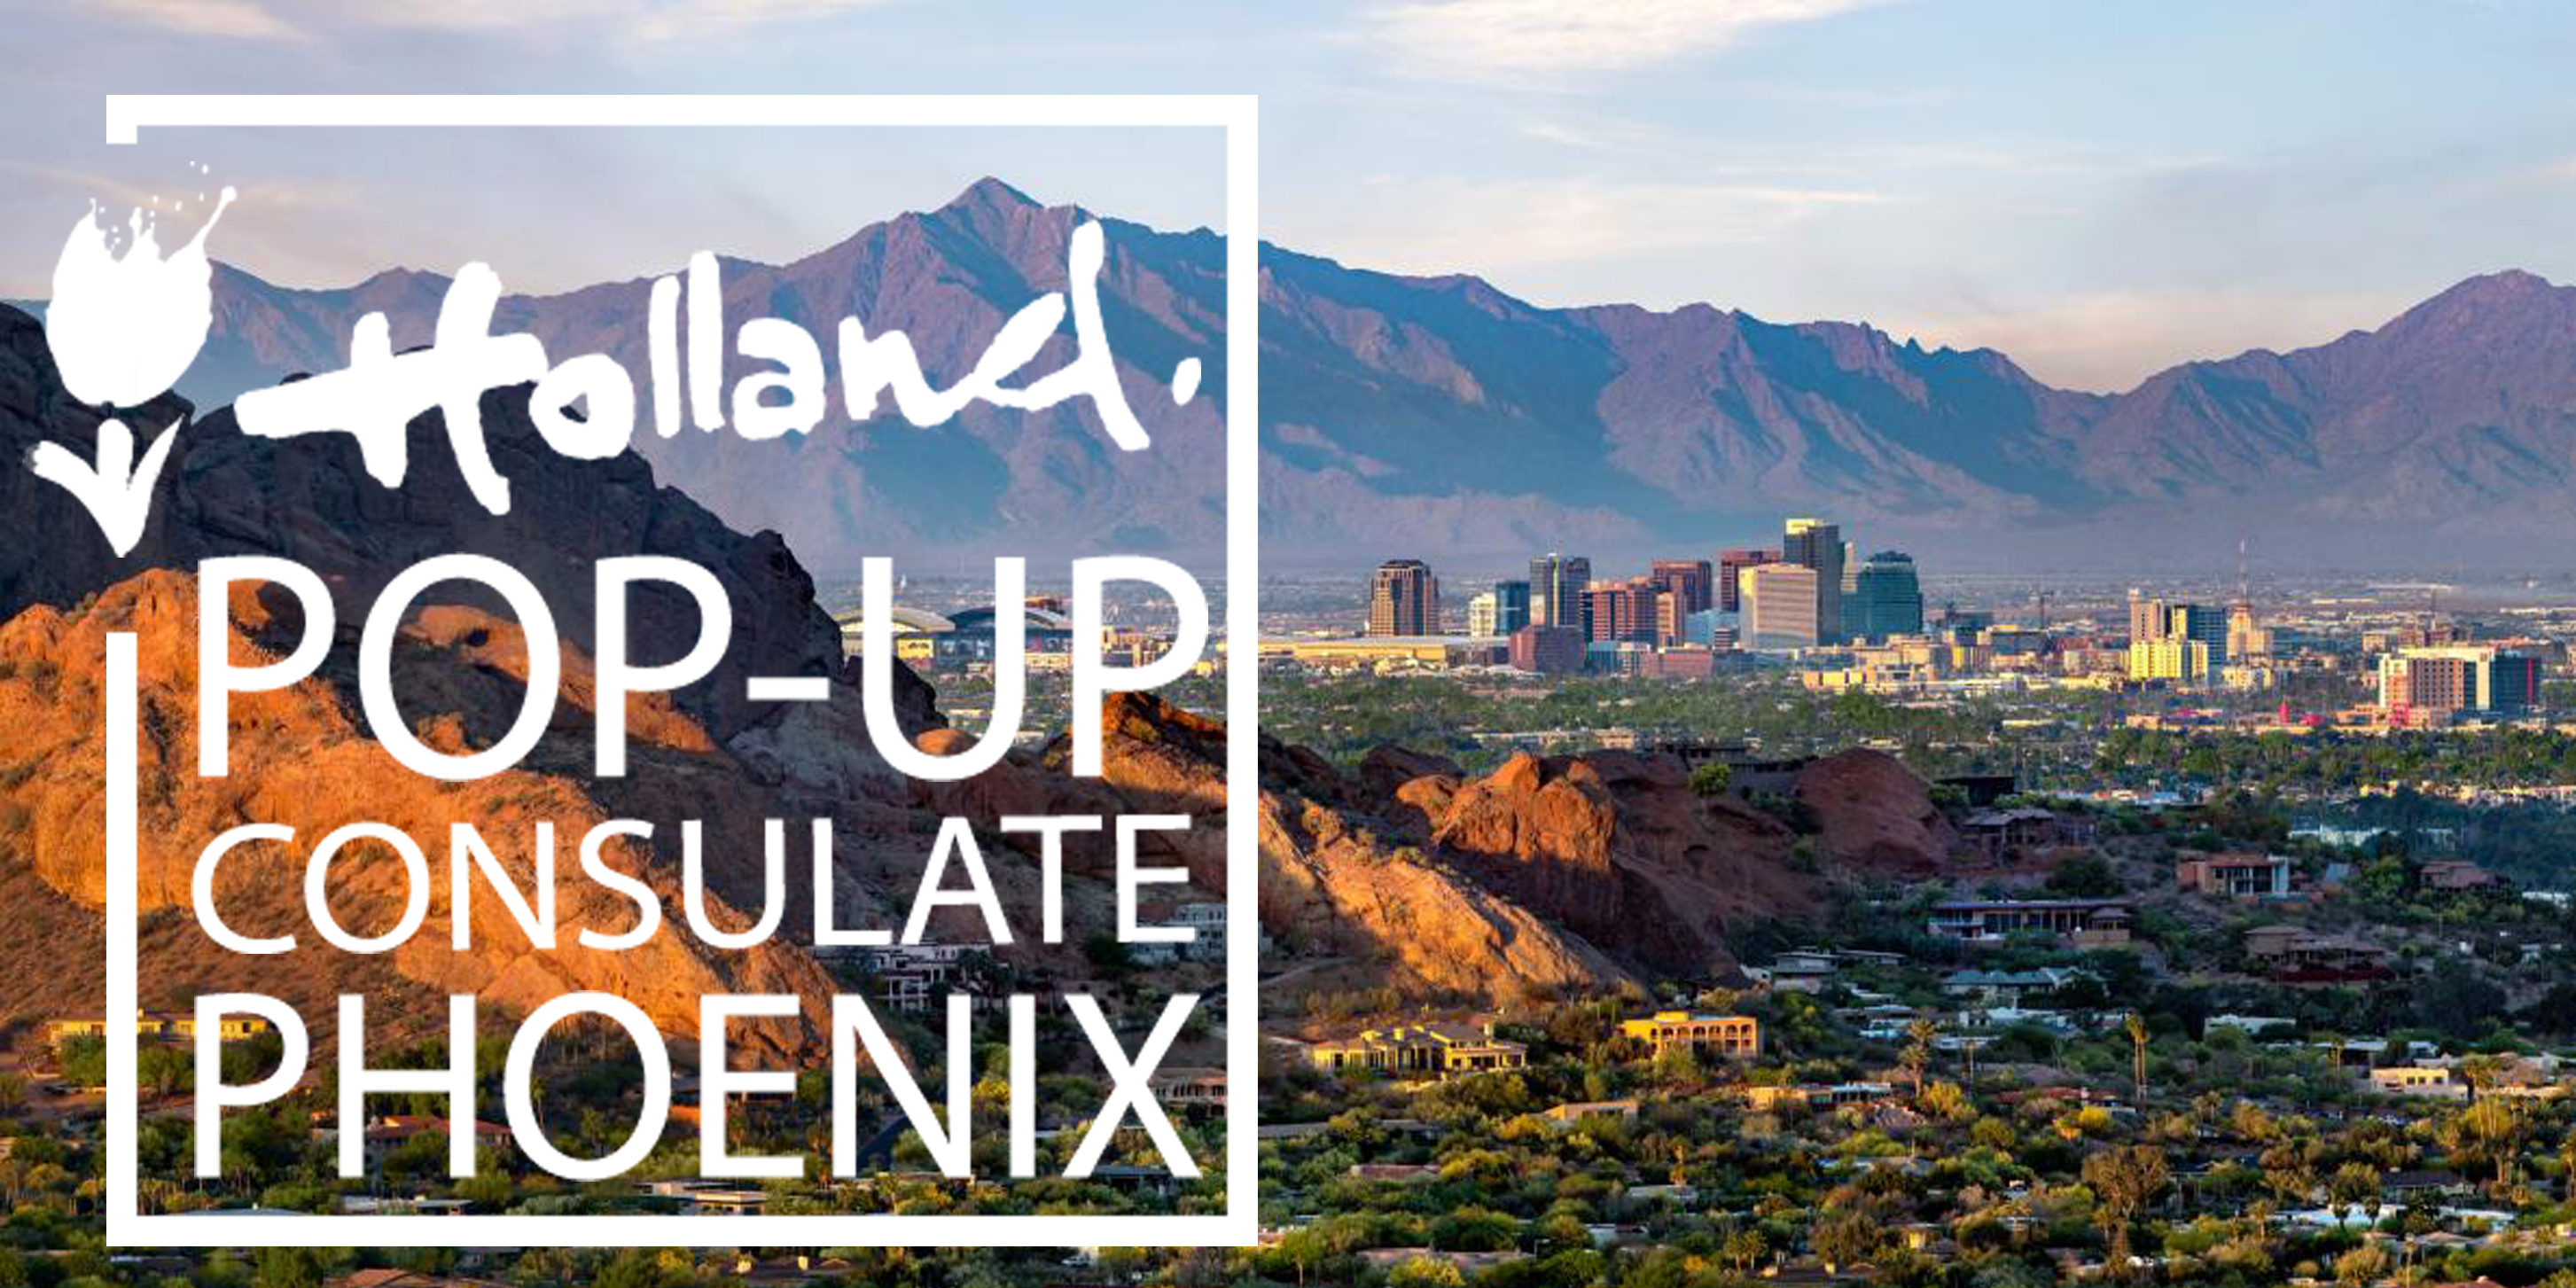 Popping up in Phoenix: Creating connections between the Netherlands and Arizona